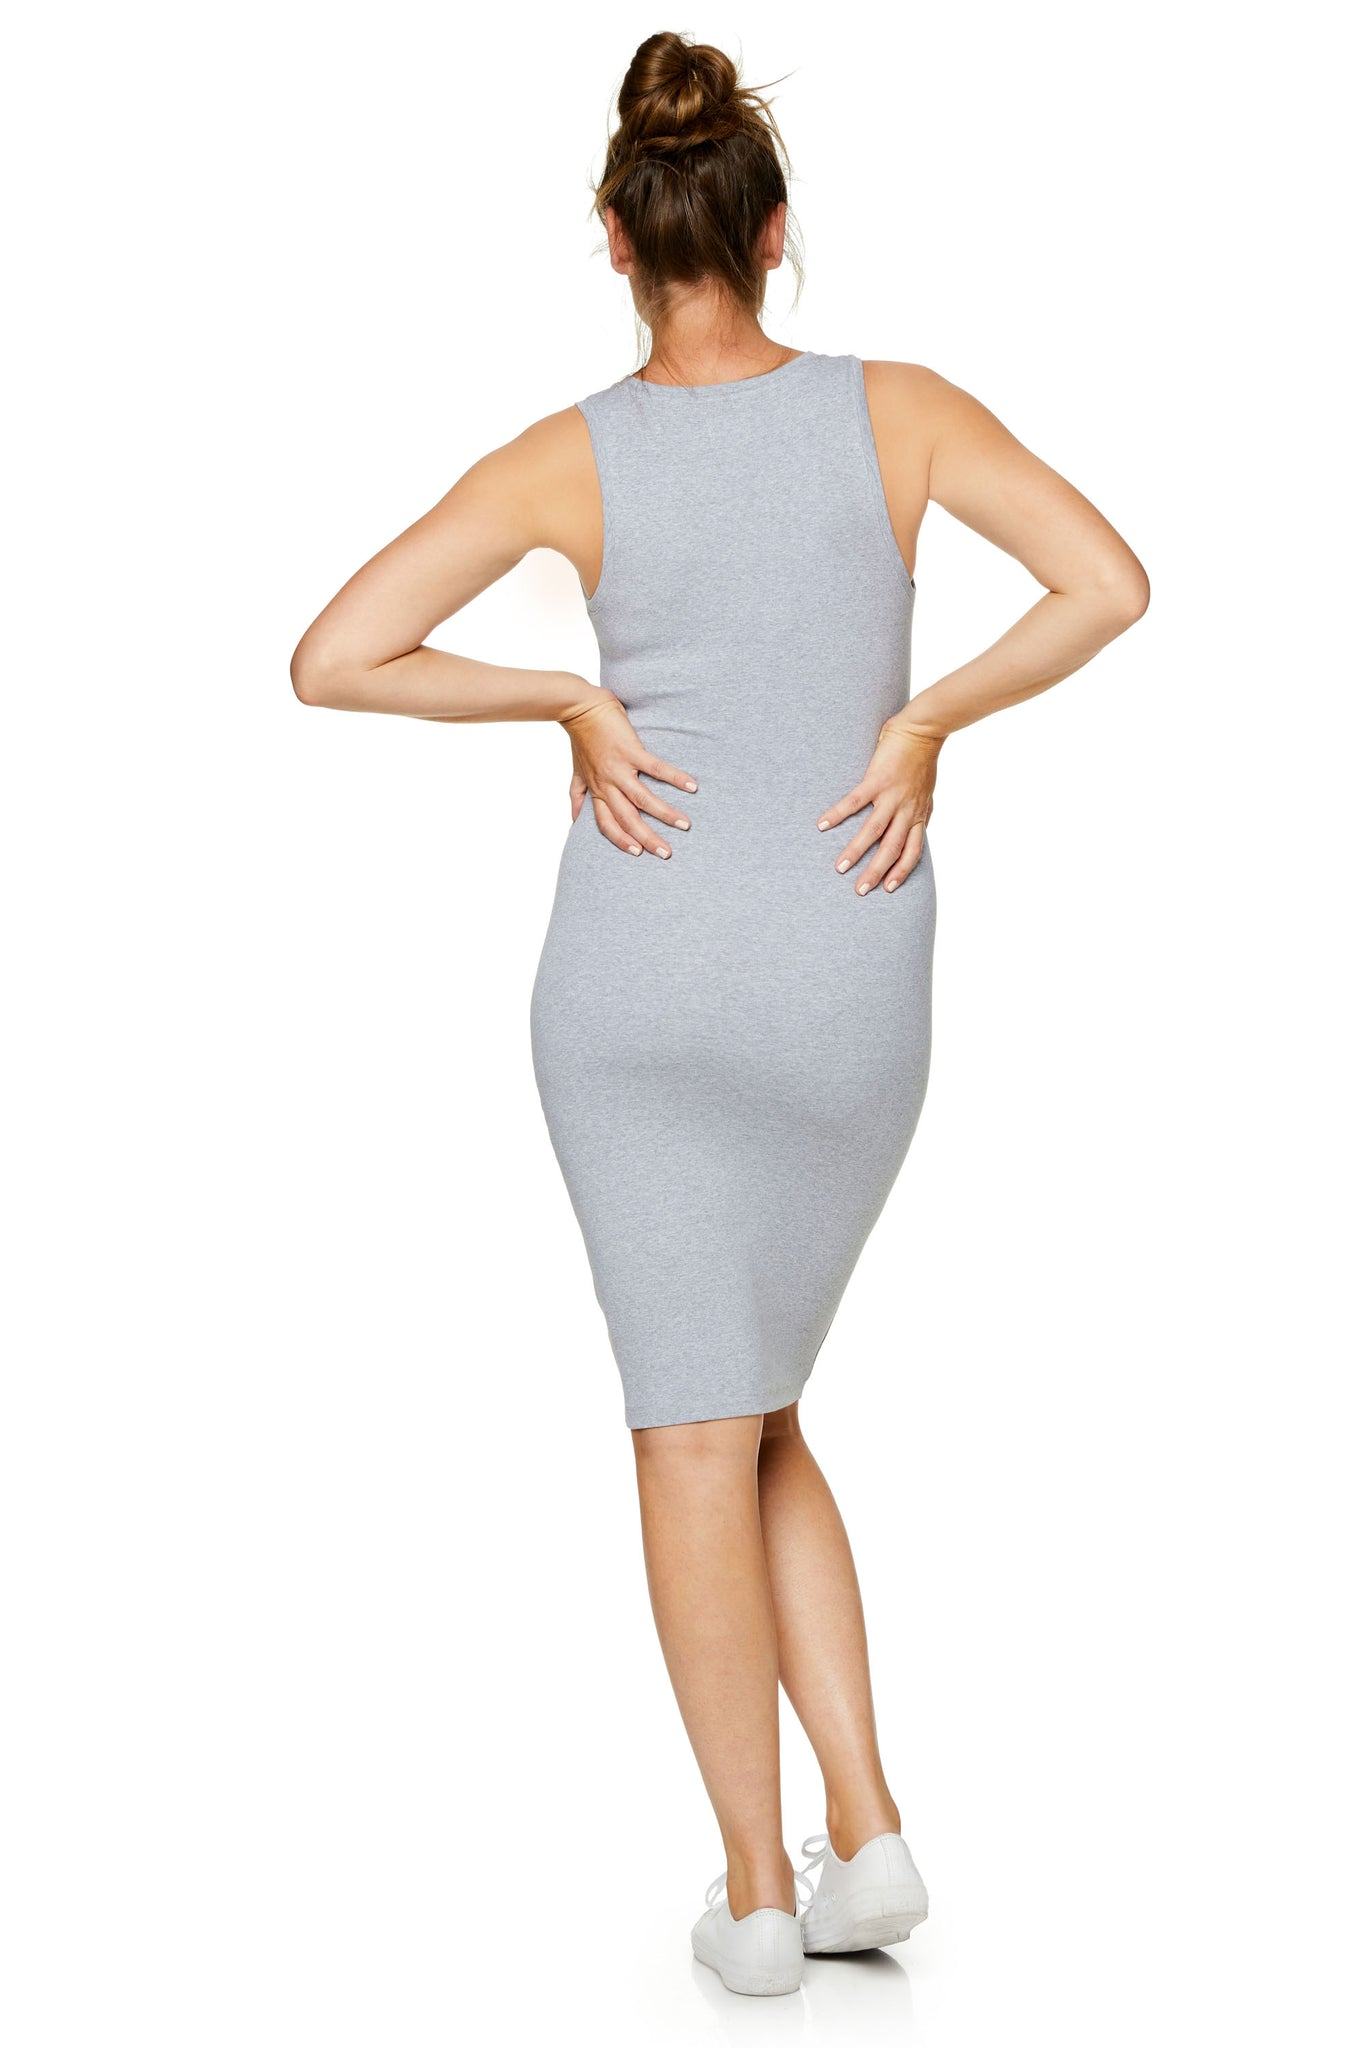 Bodycon maternity dress - grey 7